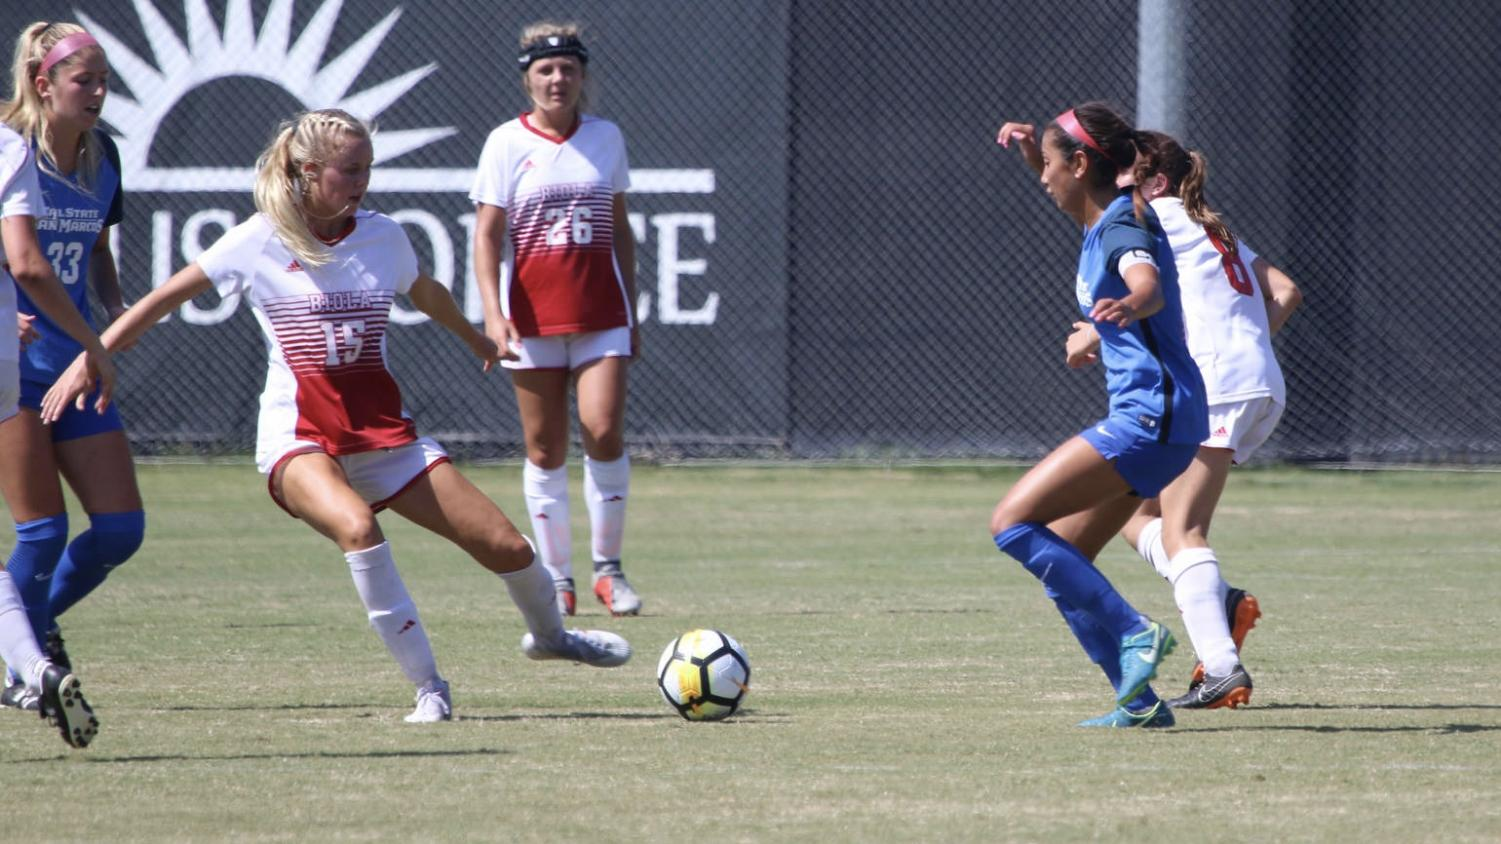 Colie Martin (15), Sarah Jeffries (16) and Katelyn Penner (8) fight for possession against Cal State San Marcos on Sept. 6, 2018. Courtesy George Rodriguez/Biola Athletics